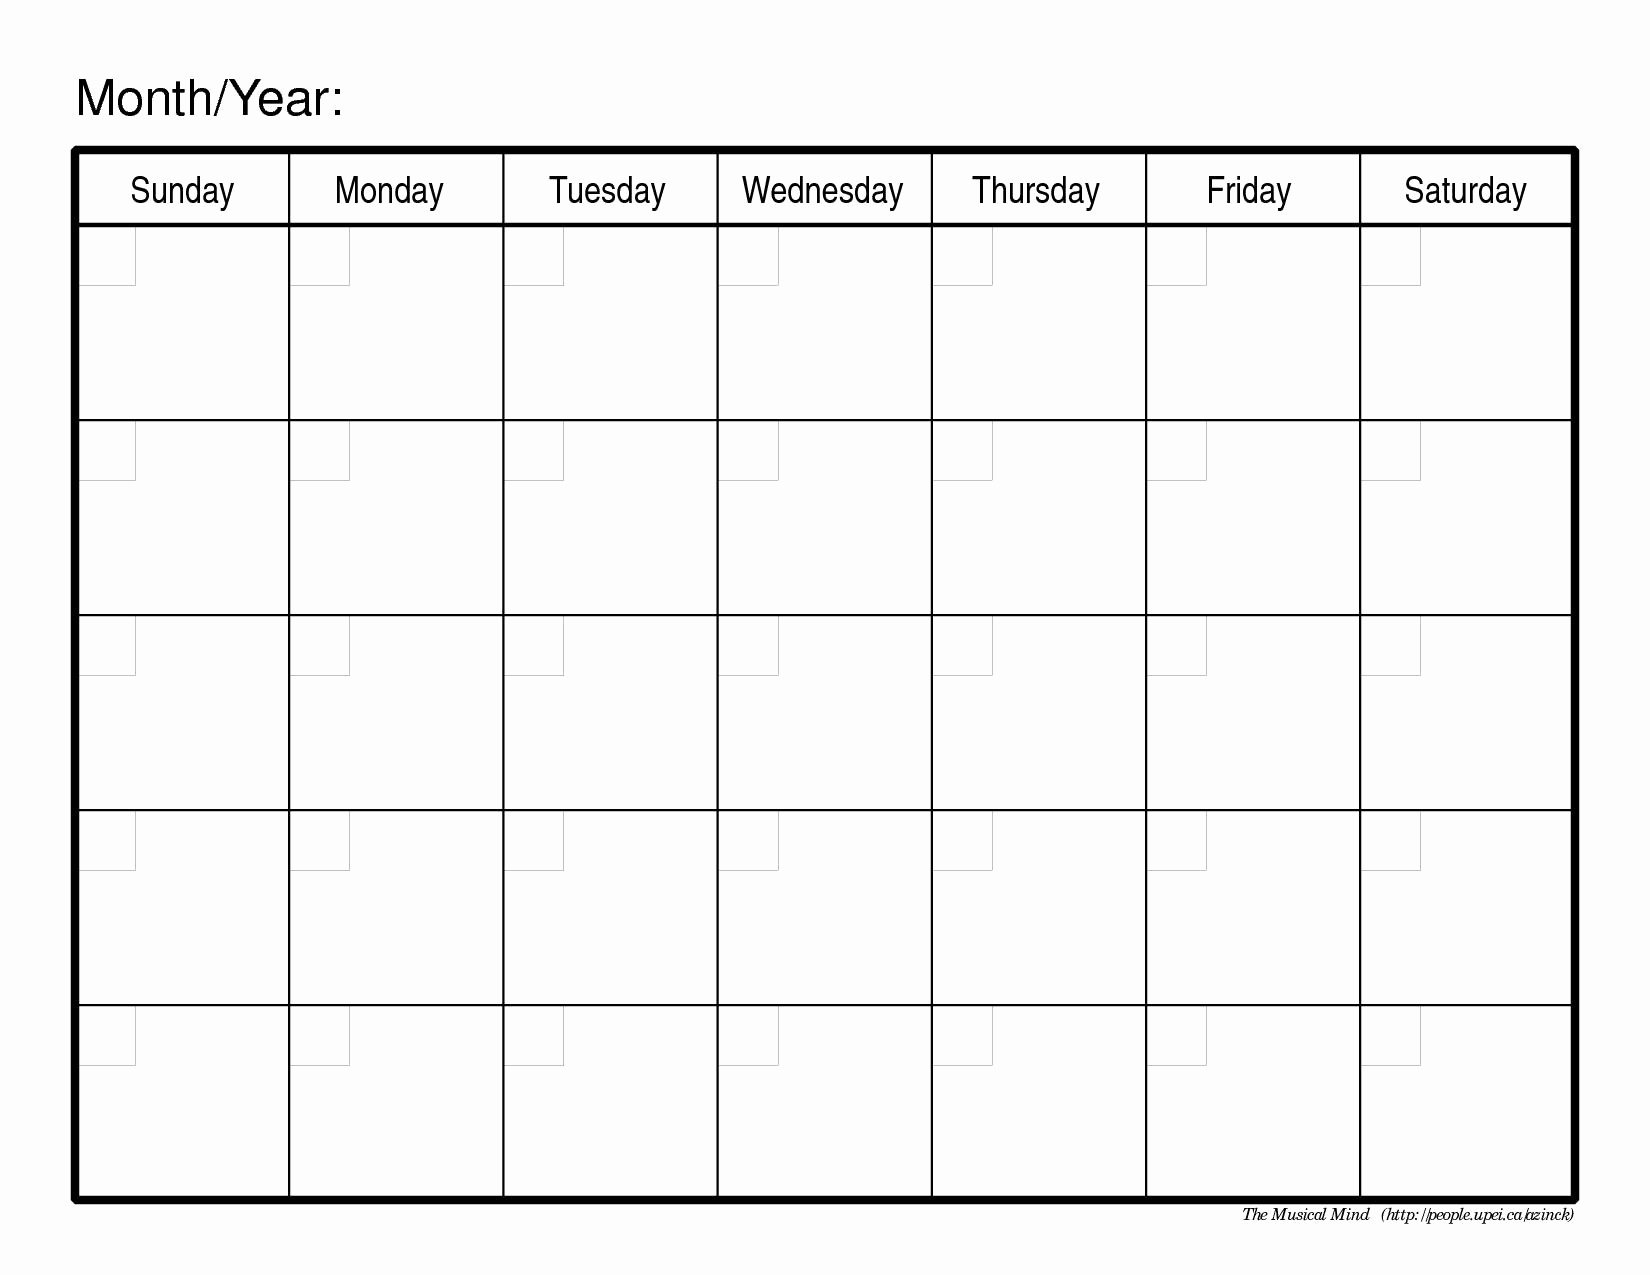 Calendar Template Print Outs Blank Calendar Print Out Printable  Free Calendars To Print Without Downloading